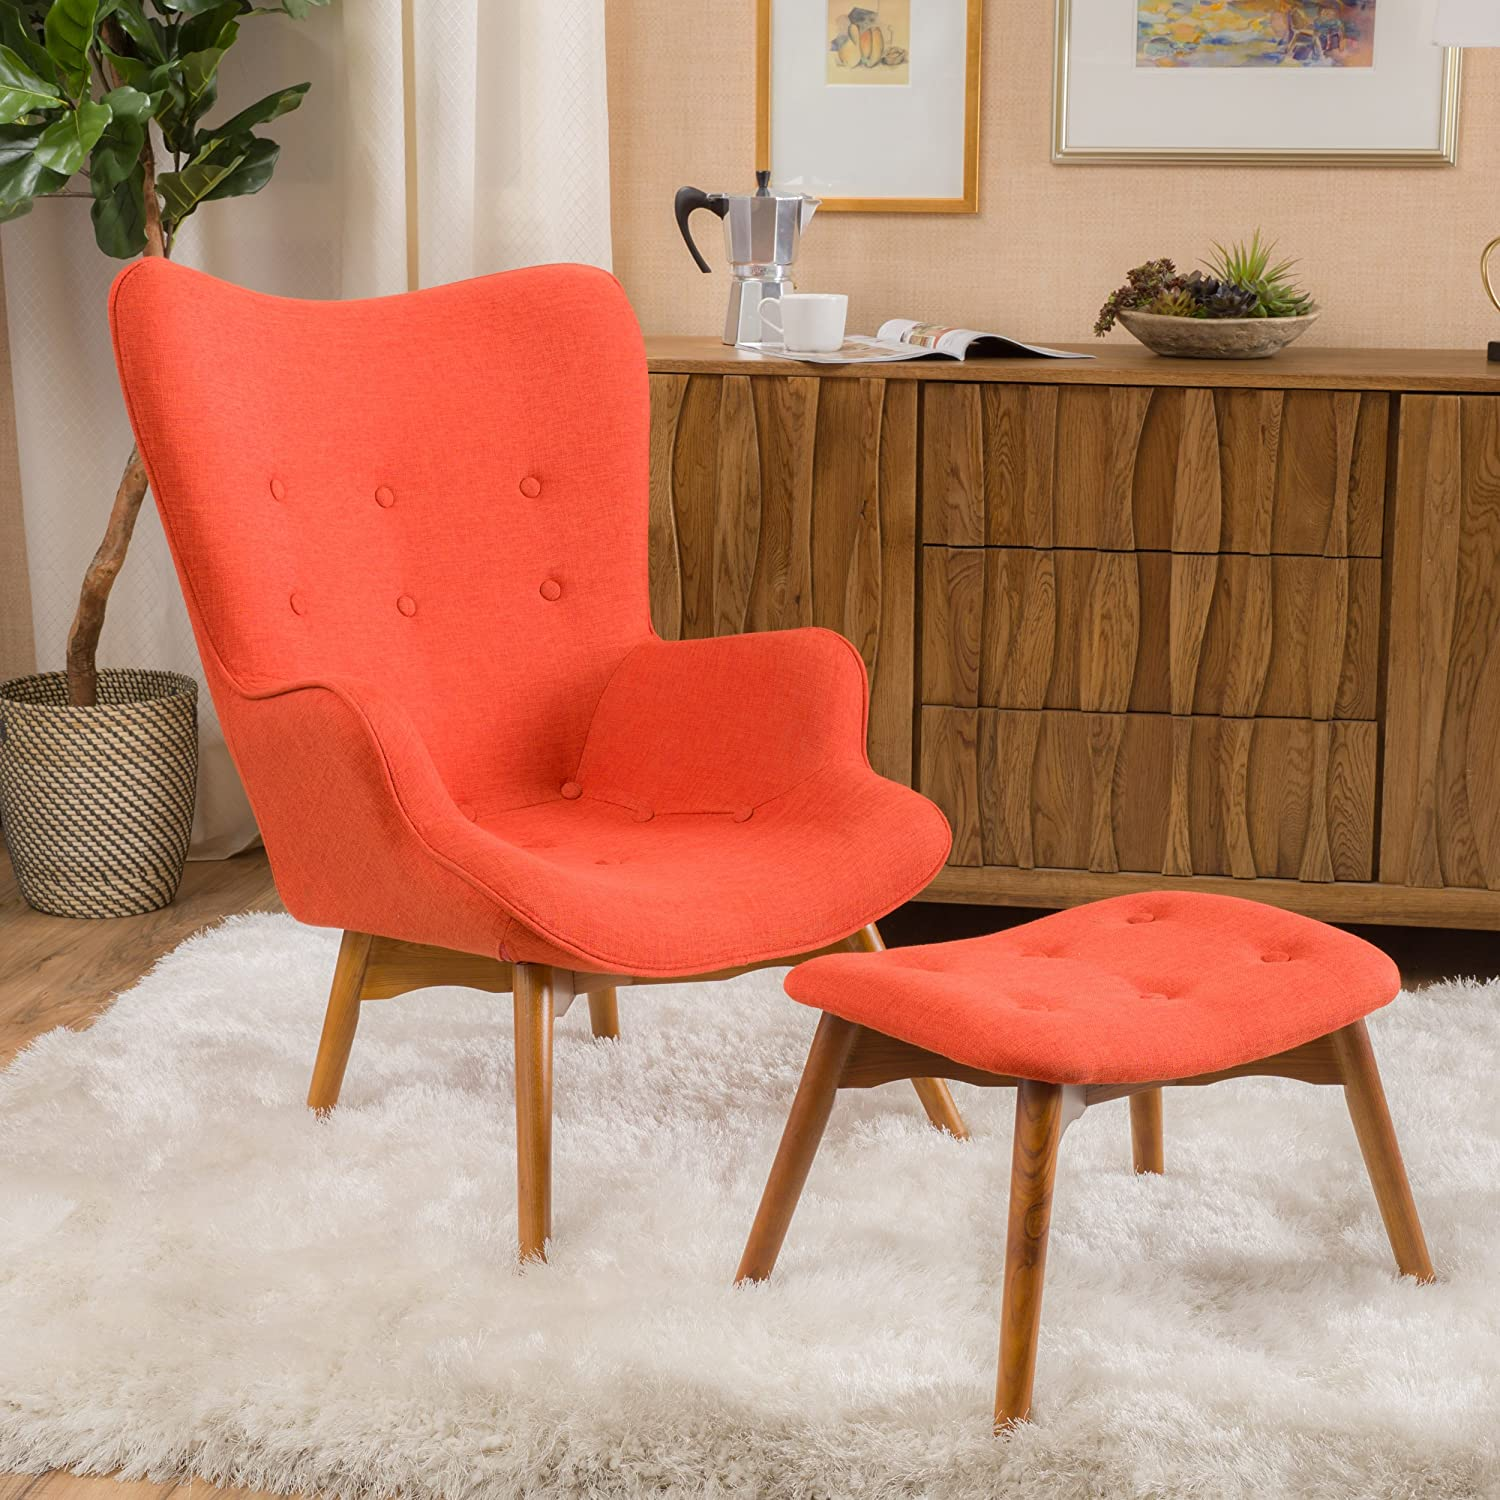 Amazon Acantha Mid Century Modern Retro Contour Chair with